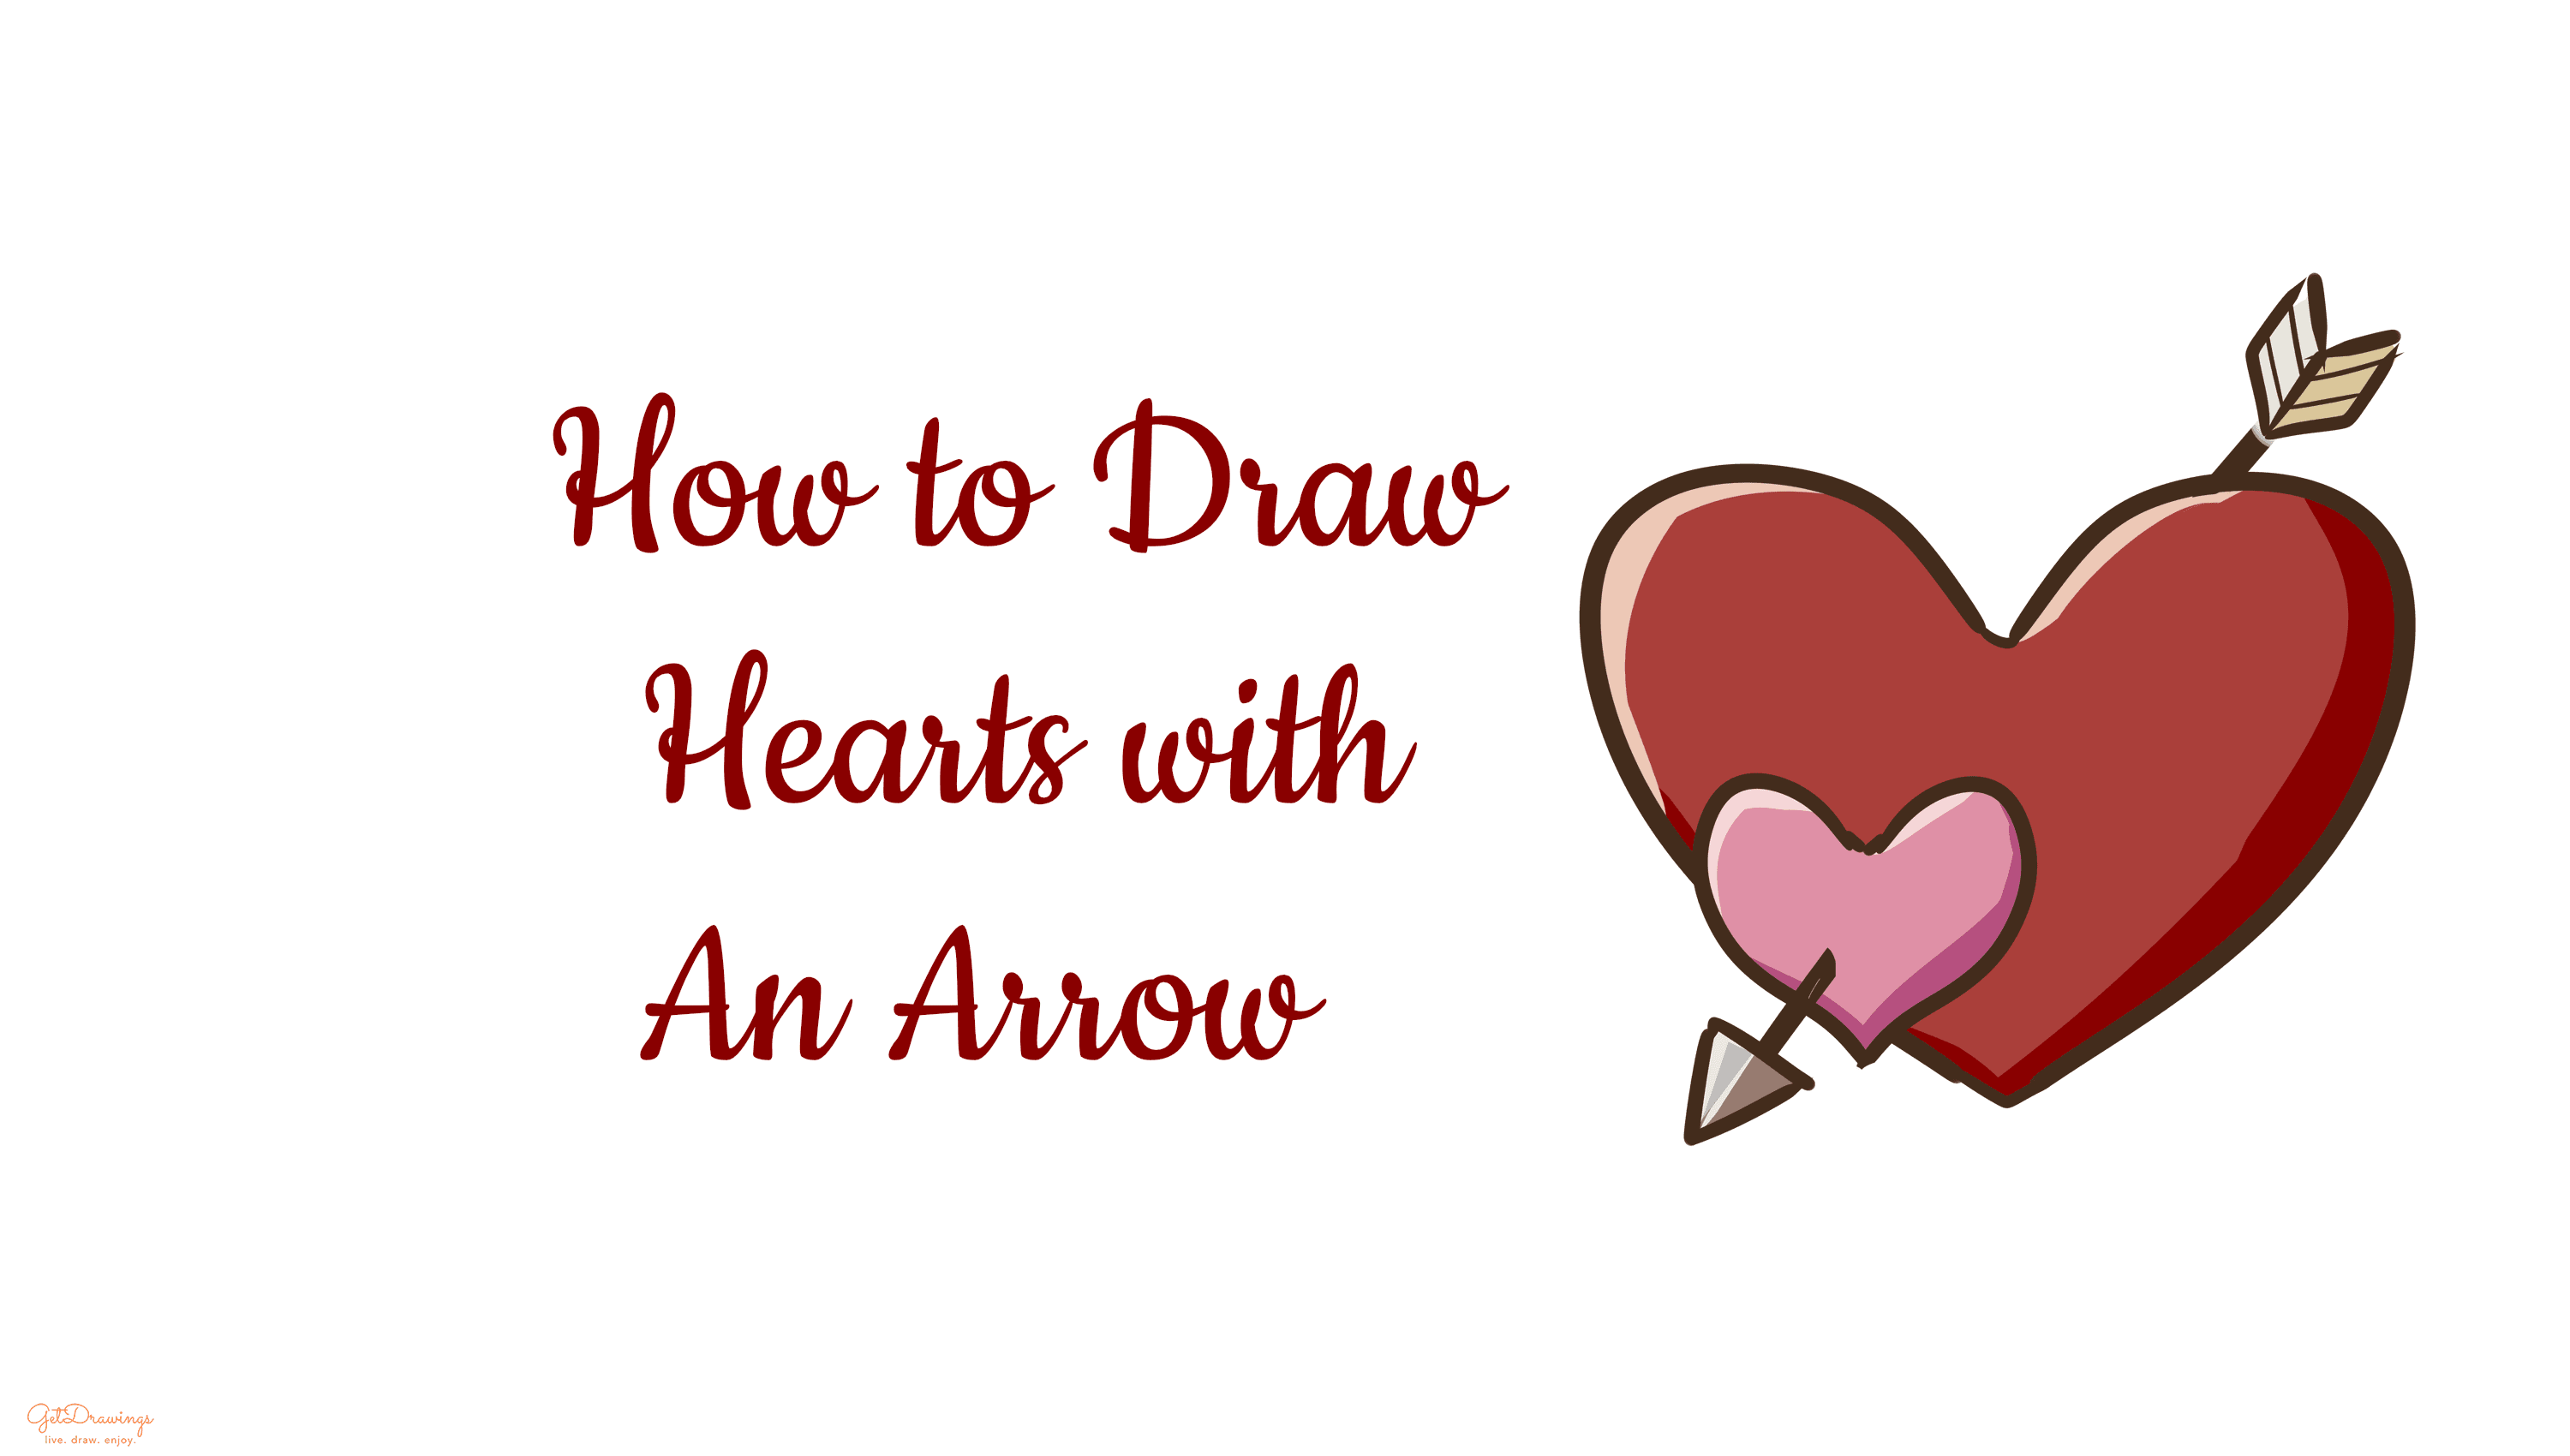 How to draw Hearts with an Arrow